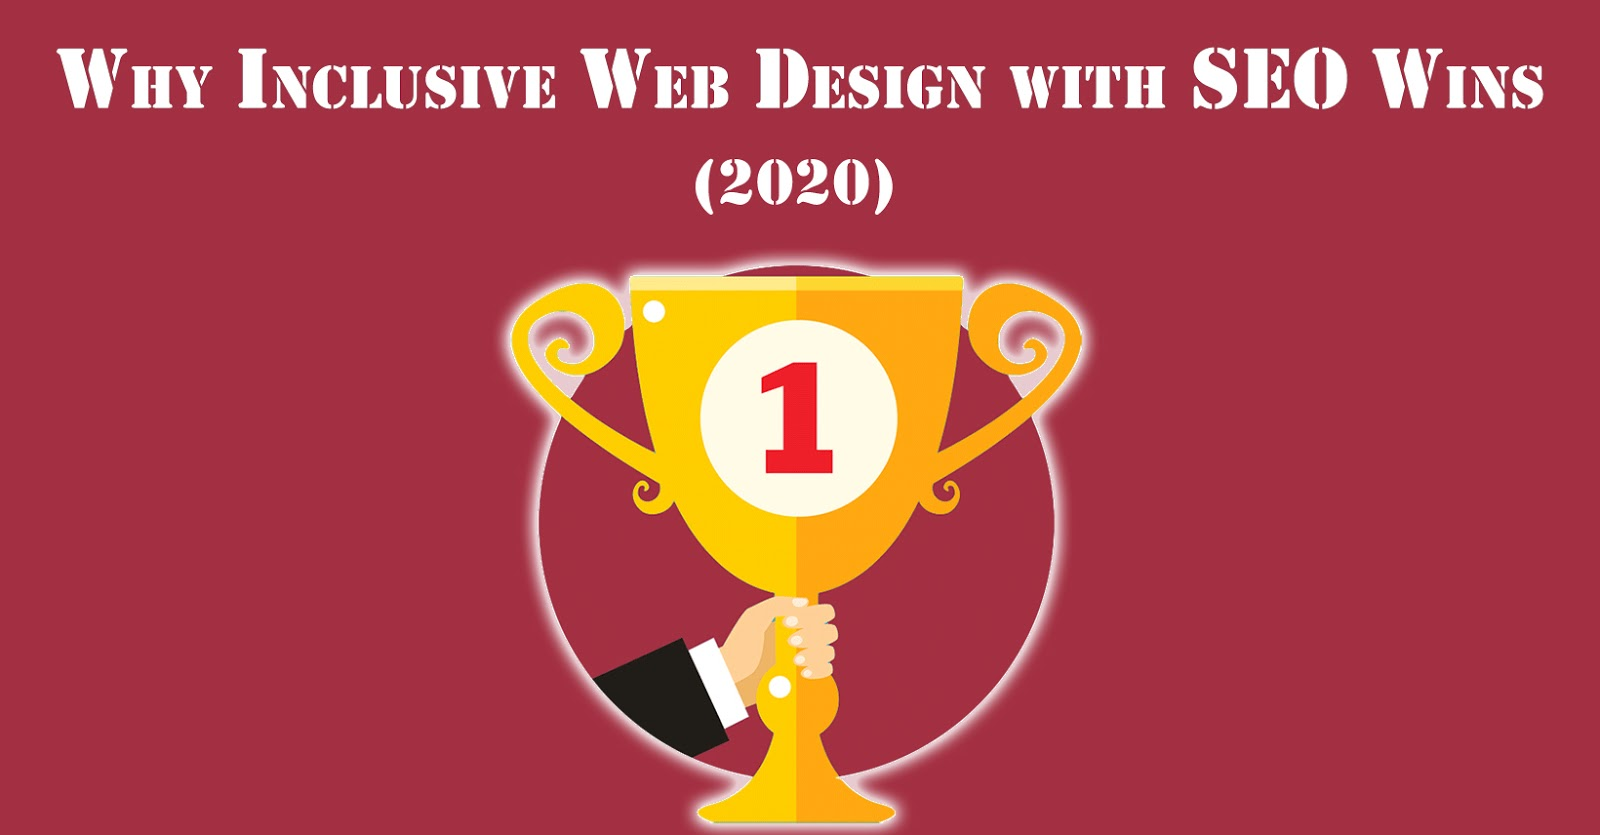 Why Inclusive Web Design with SEO Wins 2020